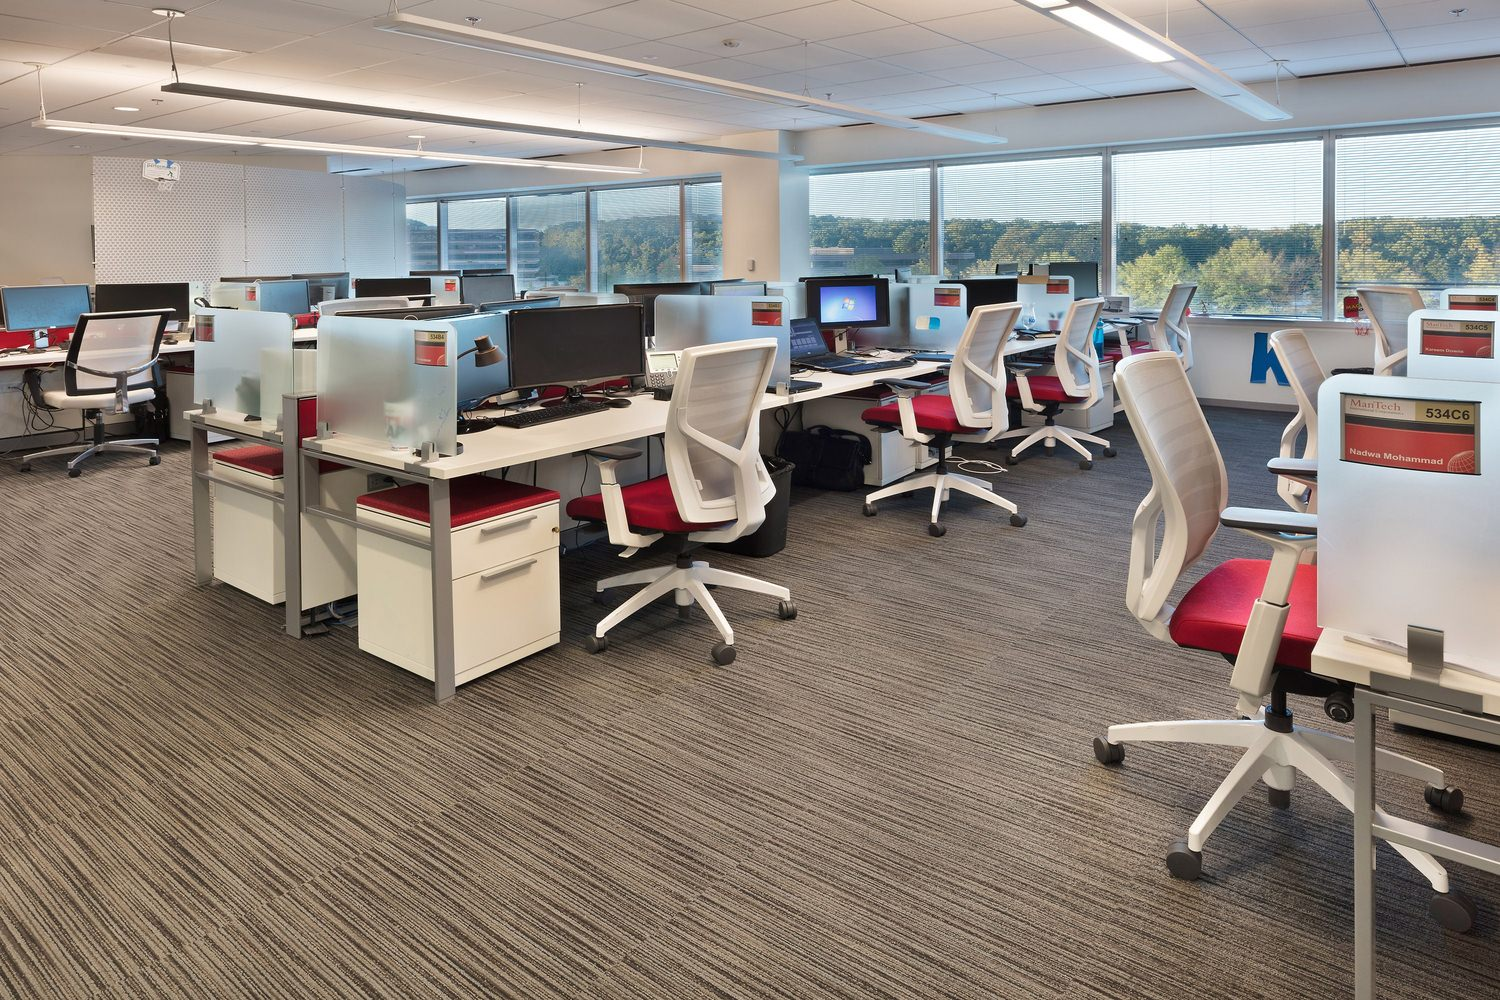 An office where there are desks, computers, and chairs at each one of the desks.